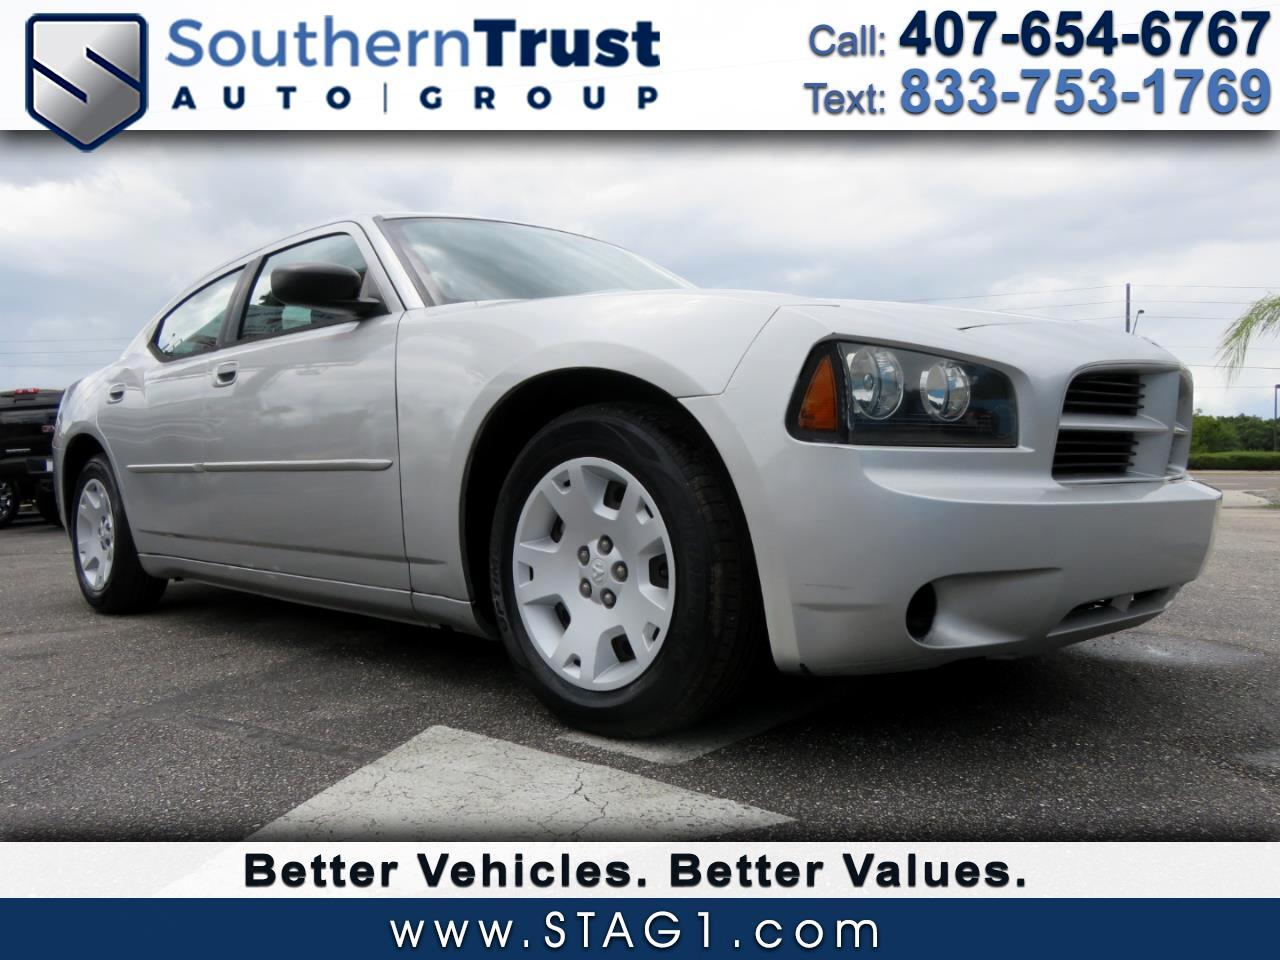 Dodge Charger 4dr Sdn Fleet RWD 2006